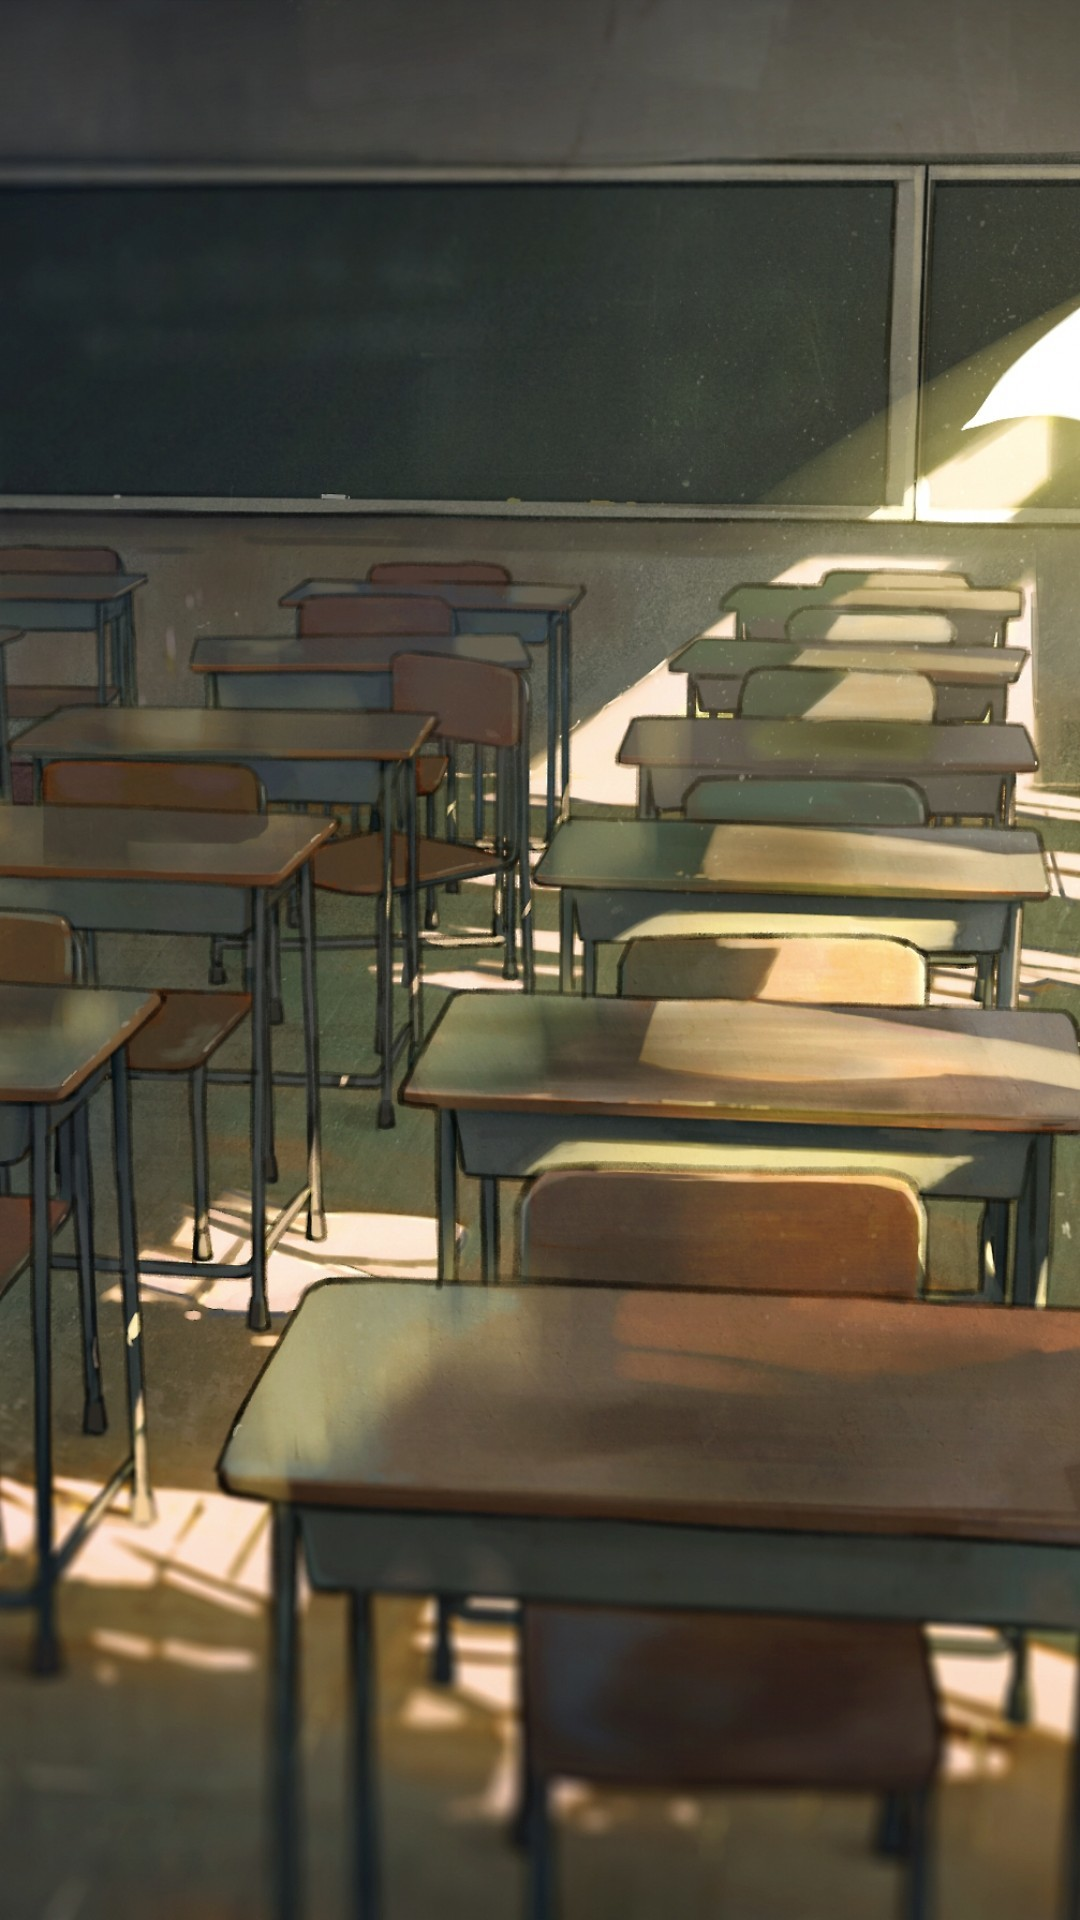 1080x1920 Anime School, Classroom, Desks, Wind, Lonely Boy